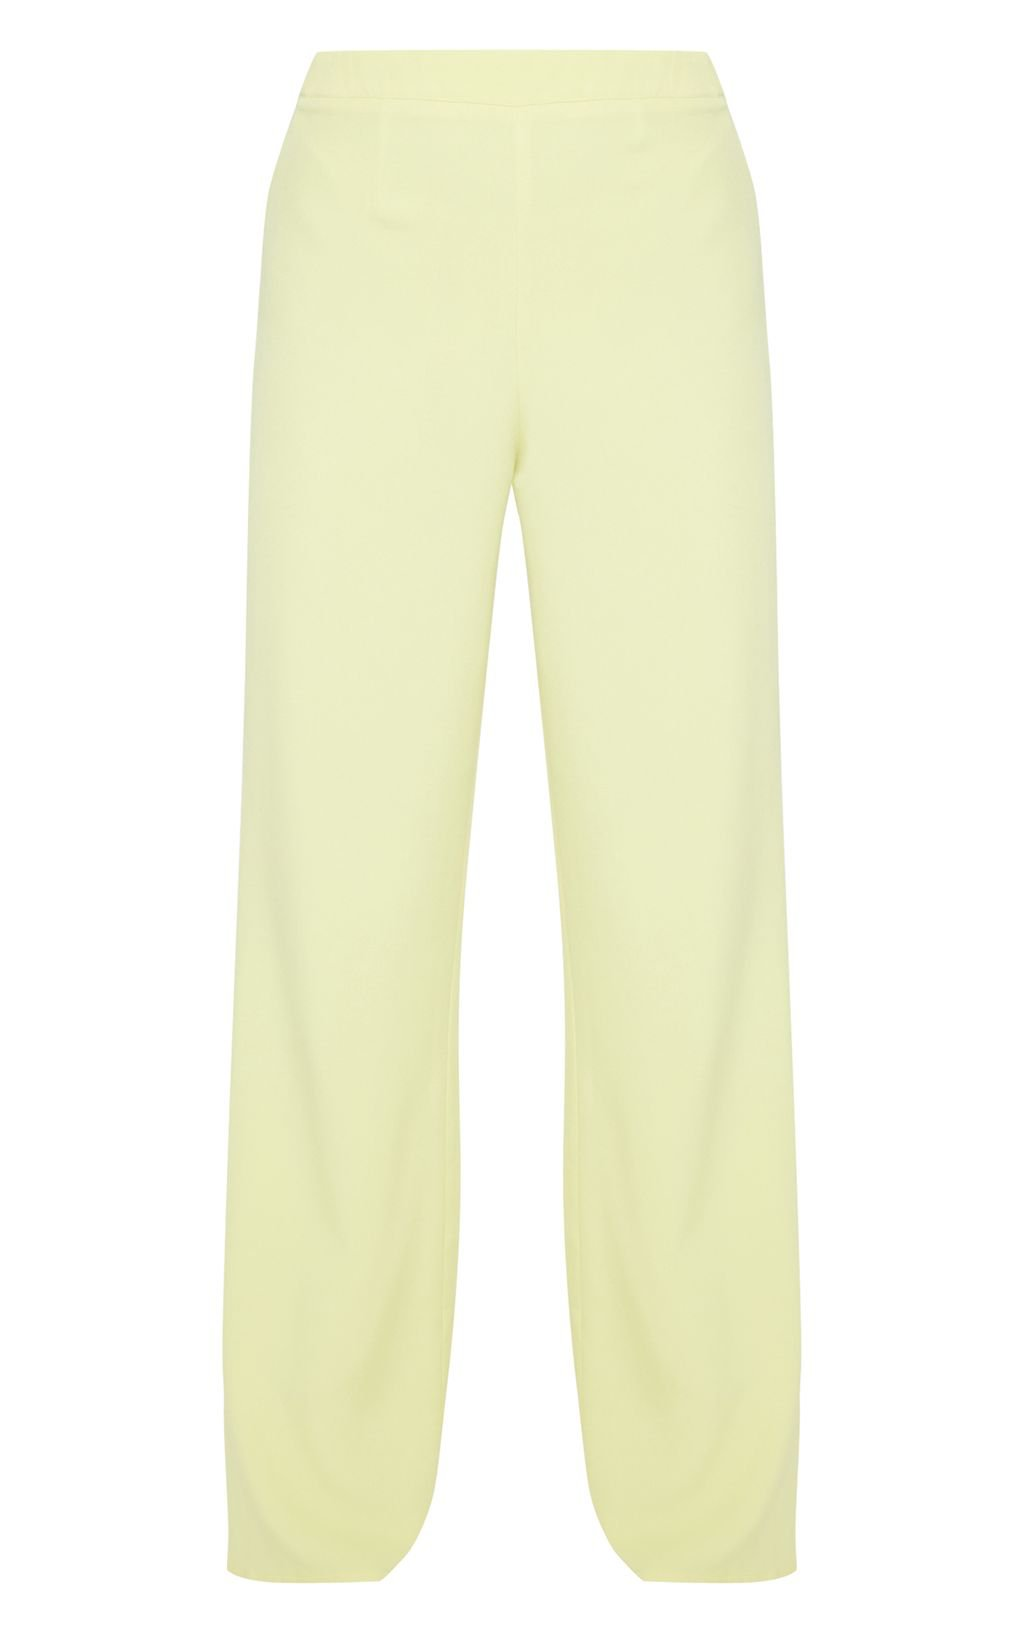 Neon Lime Wide Leg Suit Trouser   Trousers   PrettyLittleThing USA